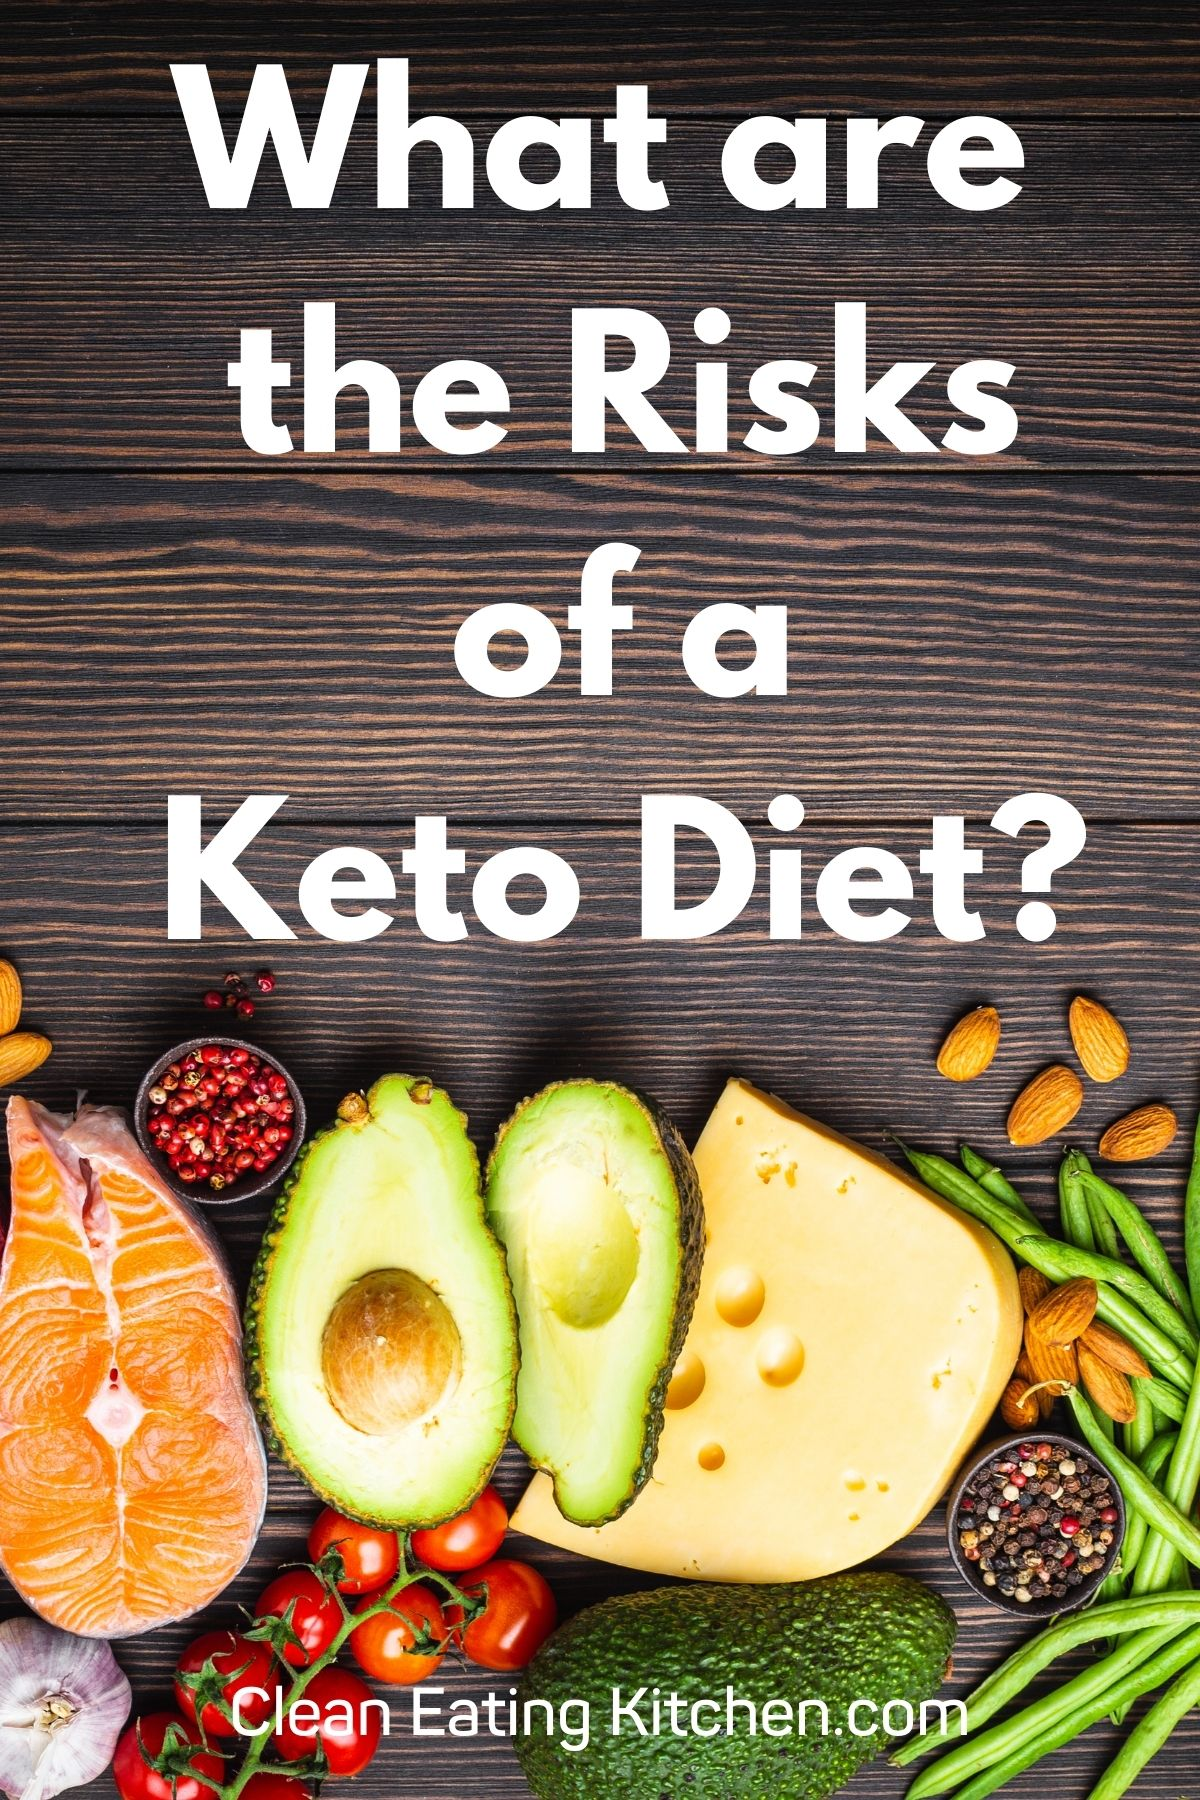 infographic that says what are the risks of a ketogenic diet?